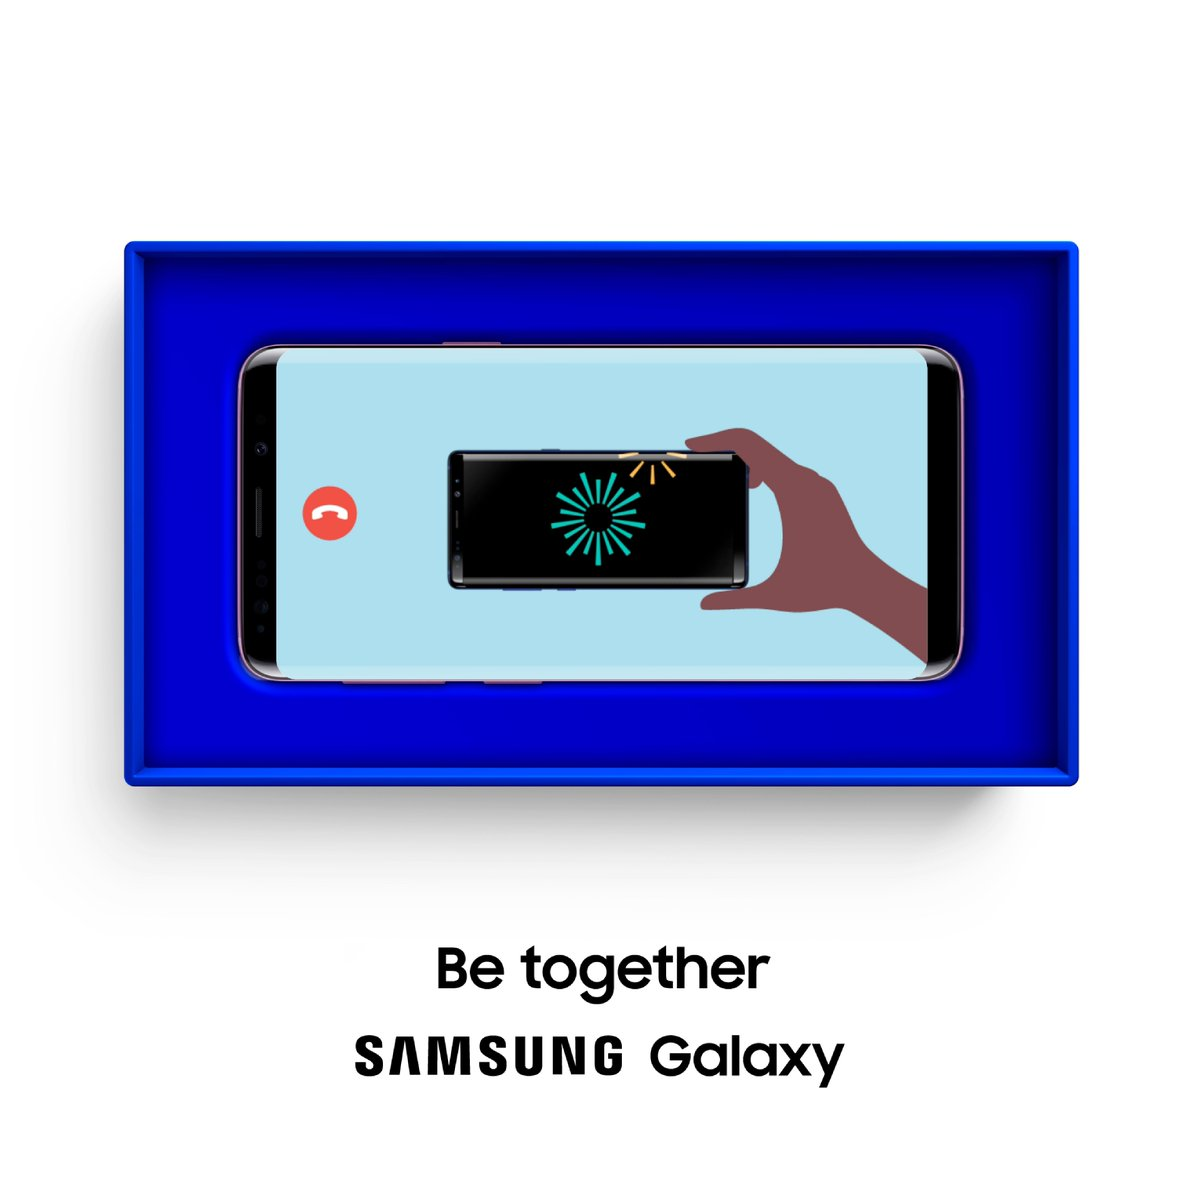 Samsung Mobile On Twitter The Gift To Make Memories With Be